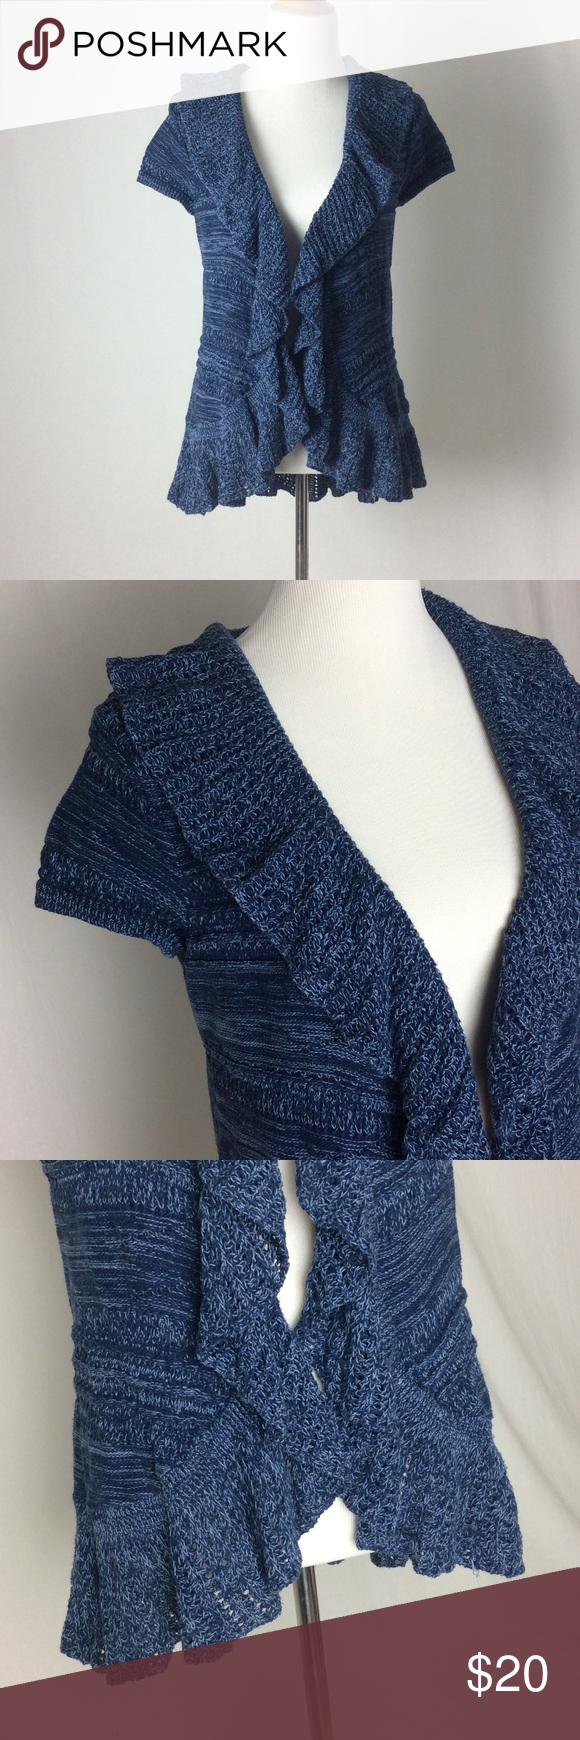 Style & Co. knit shrug | Knit shrug, Shrug cardigan and Summer parties